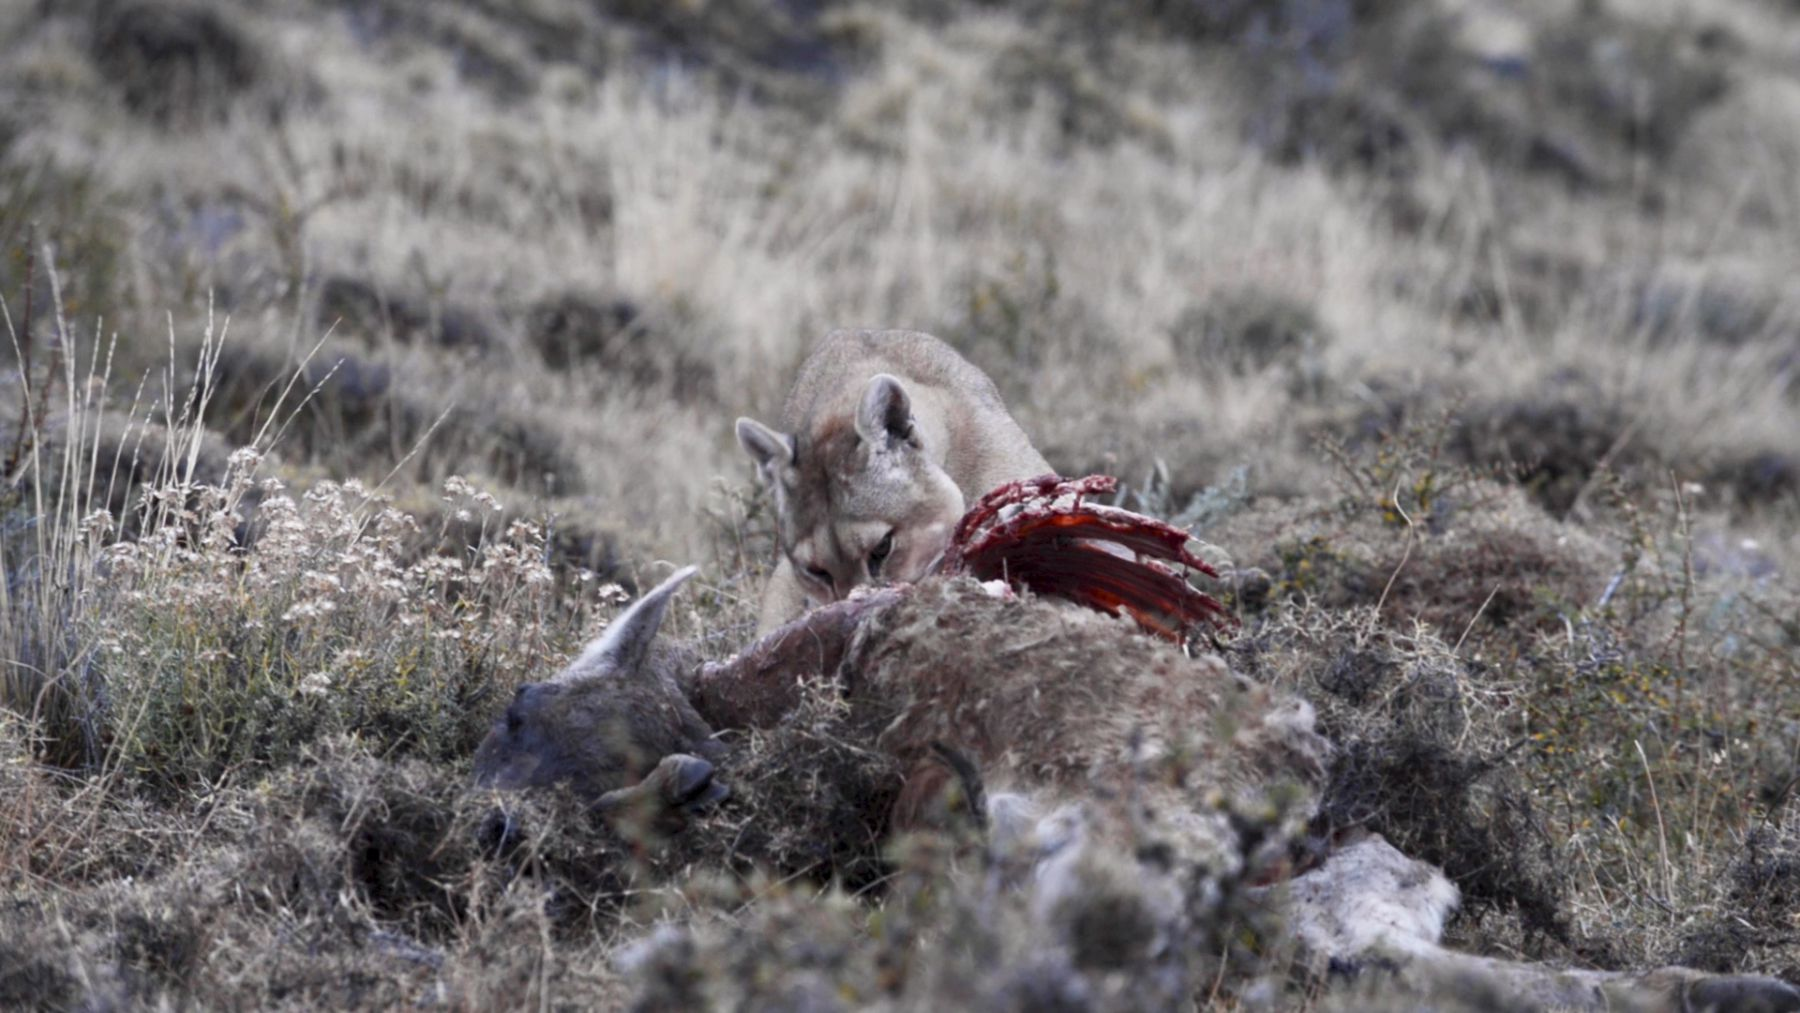 Female Patagonian puma (Puma concolor patagonia) feeding on a Guanaco (Lama guanacoe) carcass, Torres del Paine National Park, Patagonia, Chile, July.